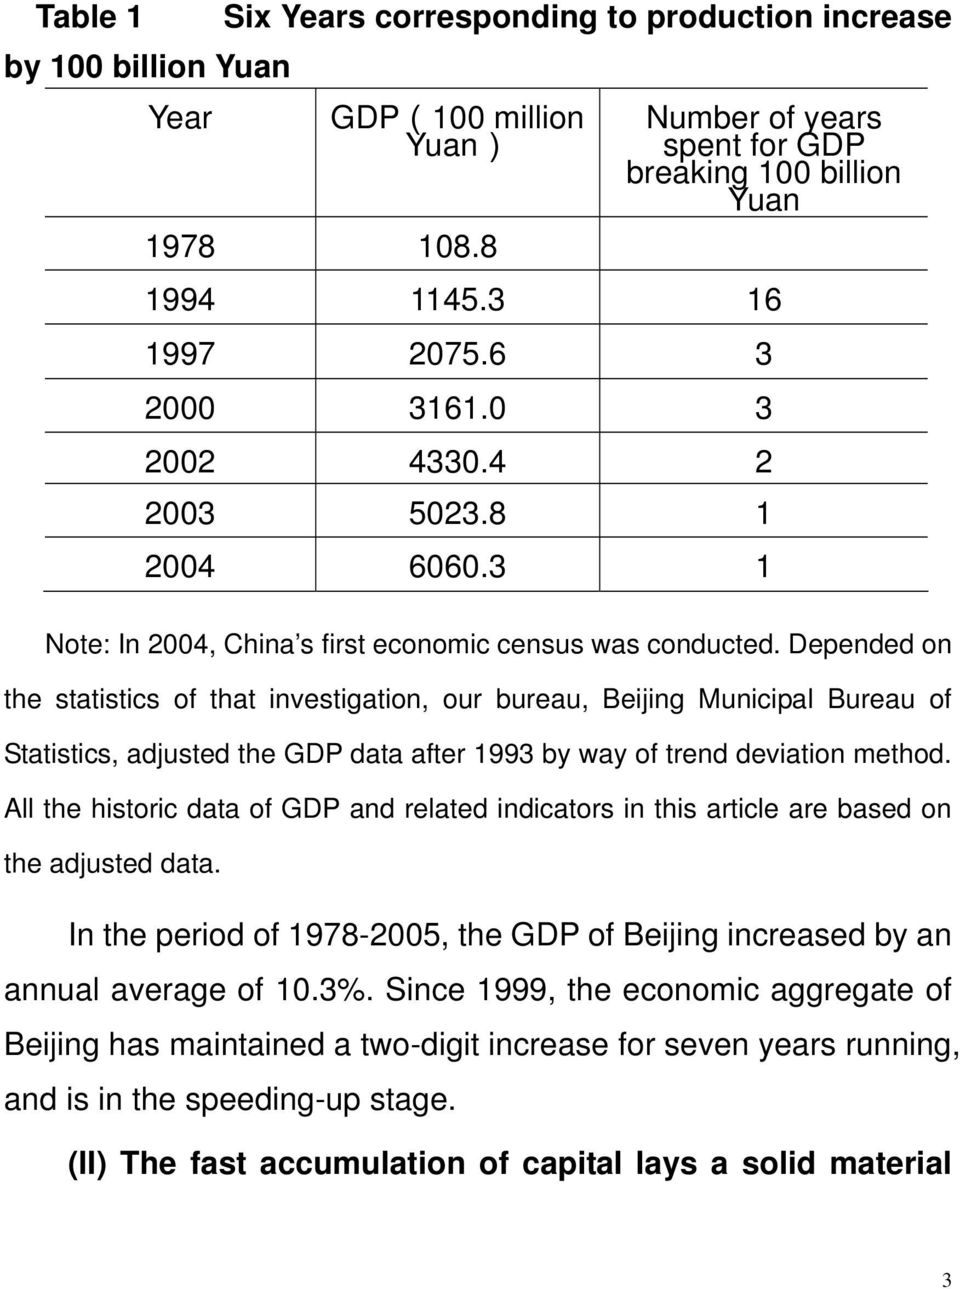 Depended on the statistics of that investigation, our bureau, Beijing Municipal Bureau of Statistics, adjusted the GDP data after 1993 by way of trend deviation method.